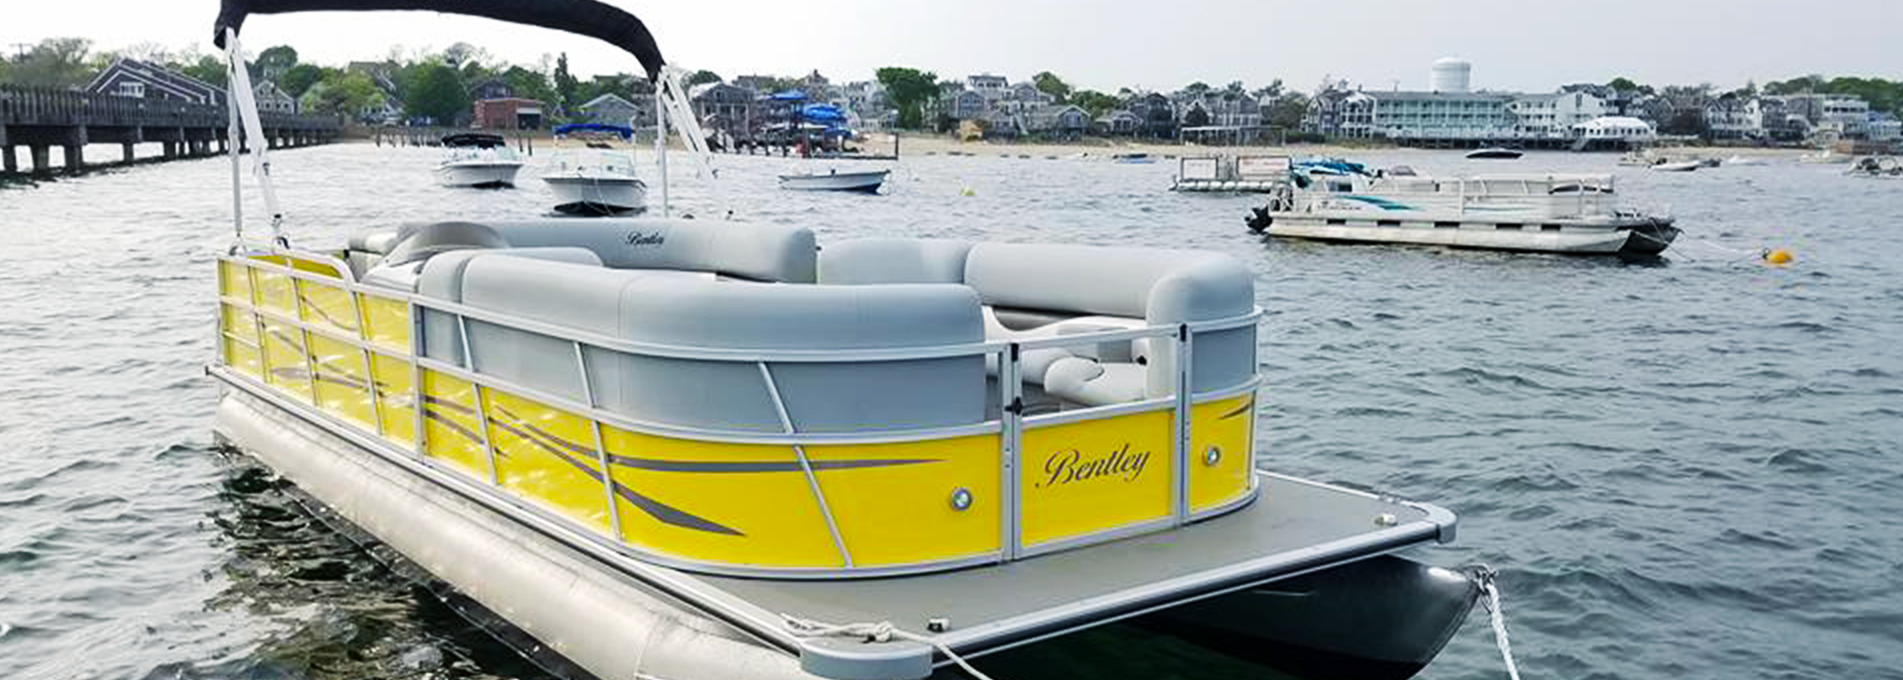 welcome to flyer s boat rental flyers boat rental